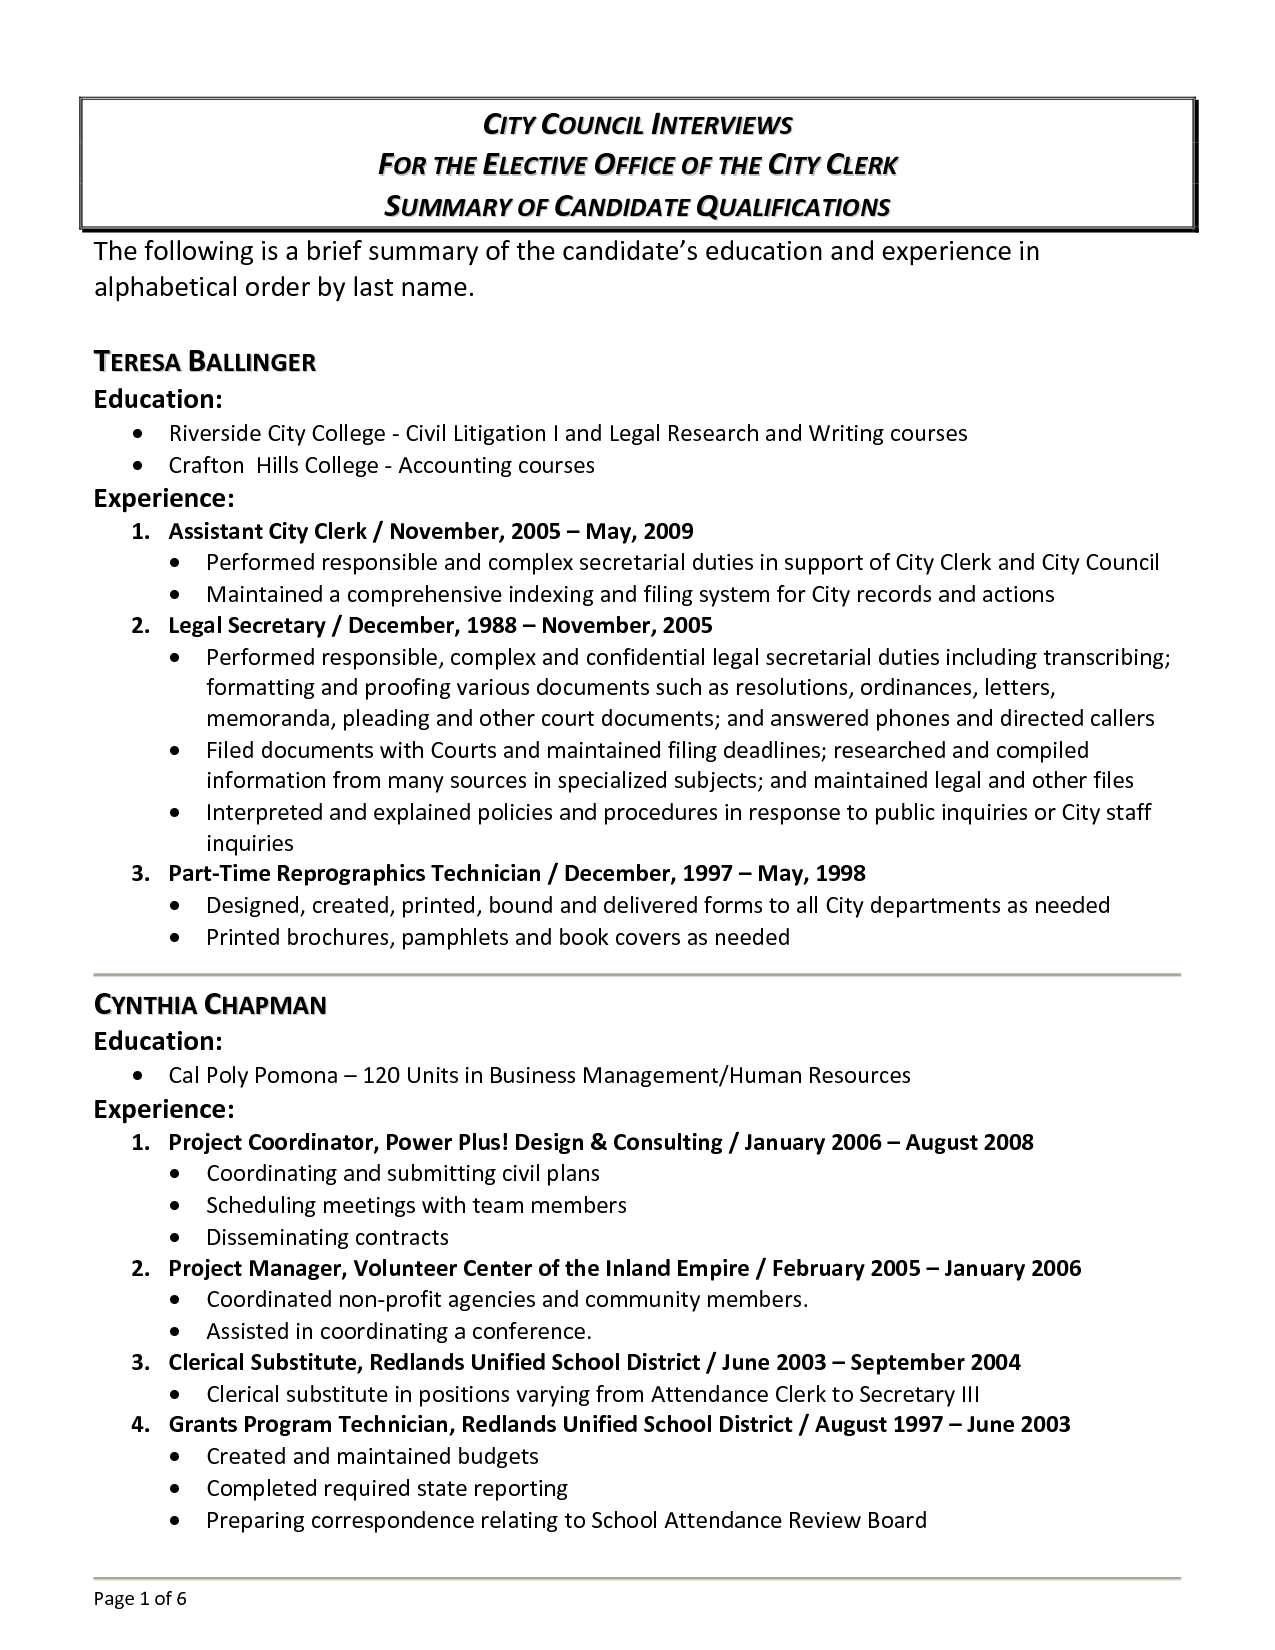 Qualification Summary Resume  Qualifications Summary Resume